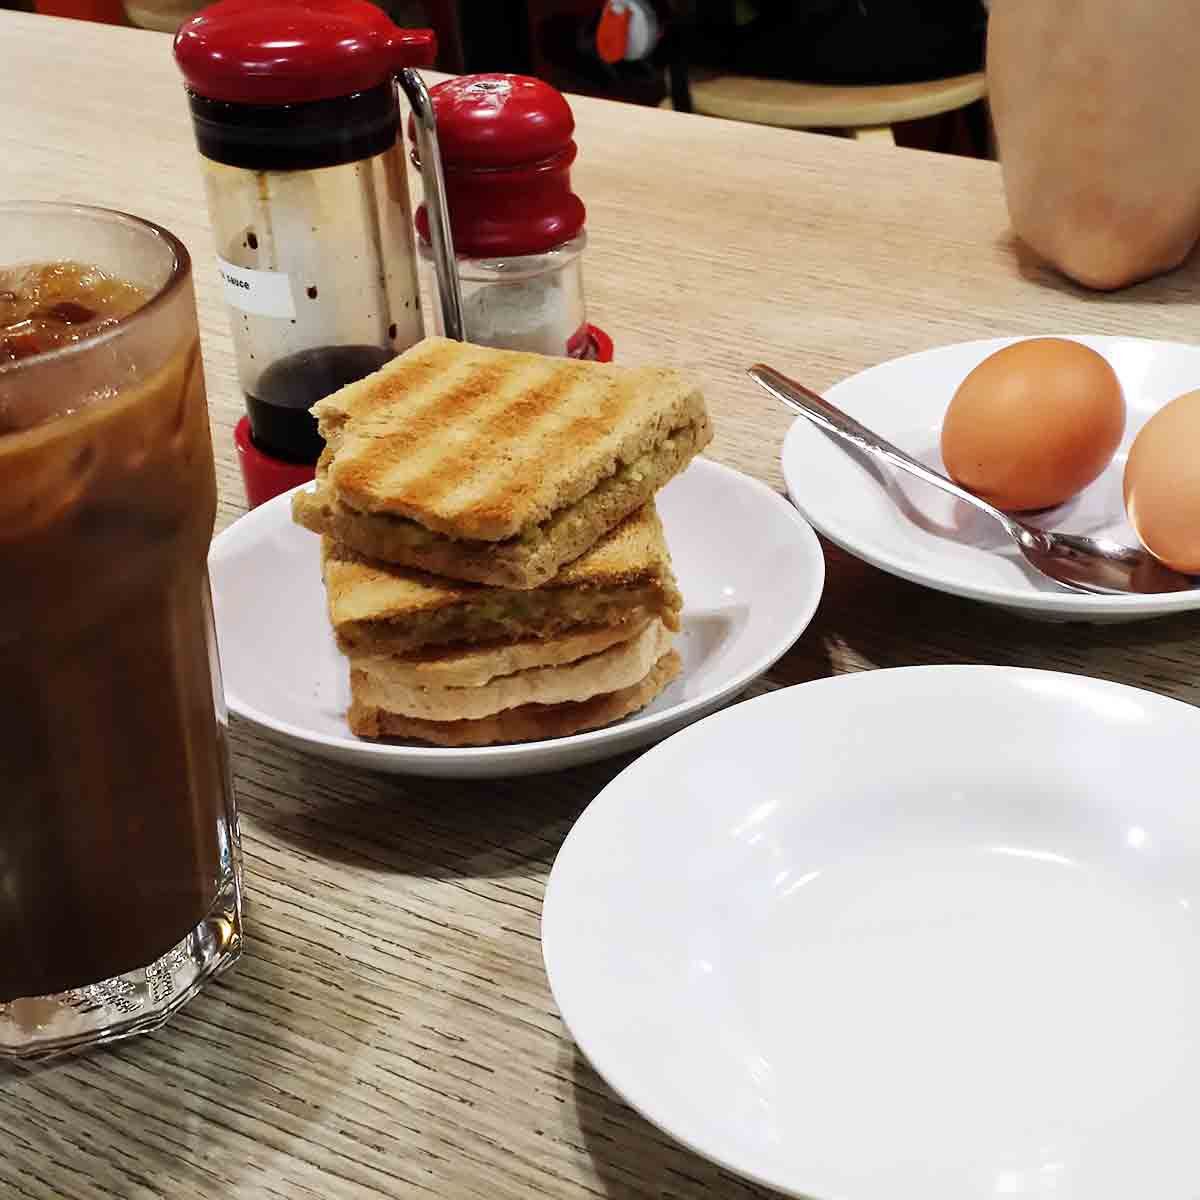 Glass of iced coffee, a stack of squares of kaya toast, a plate with soft-boiled eggs in the shell, a caddy with white pepper and soy sauce containers.